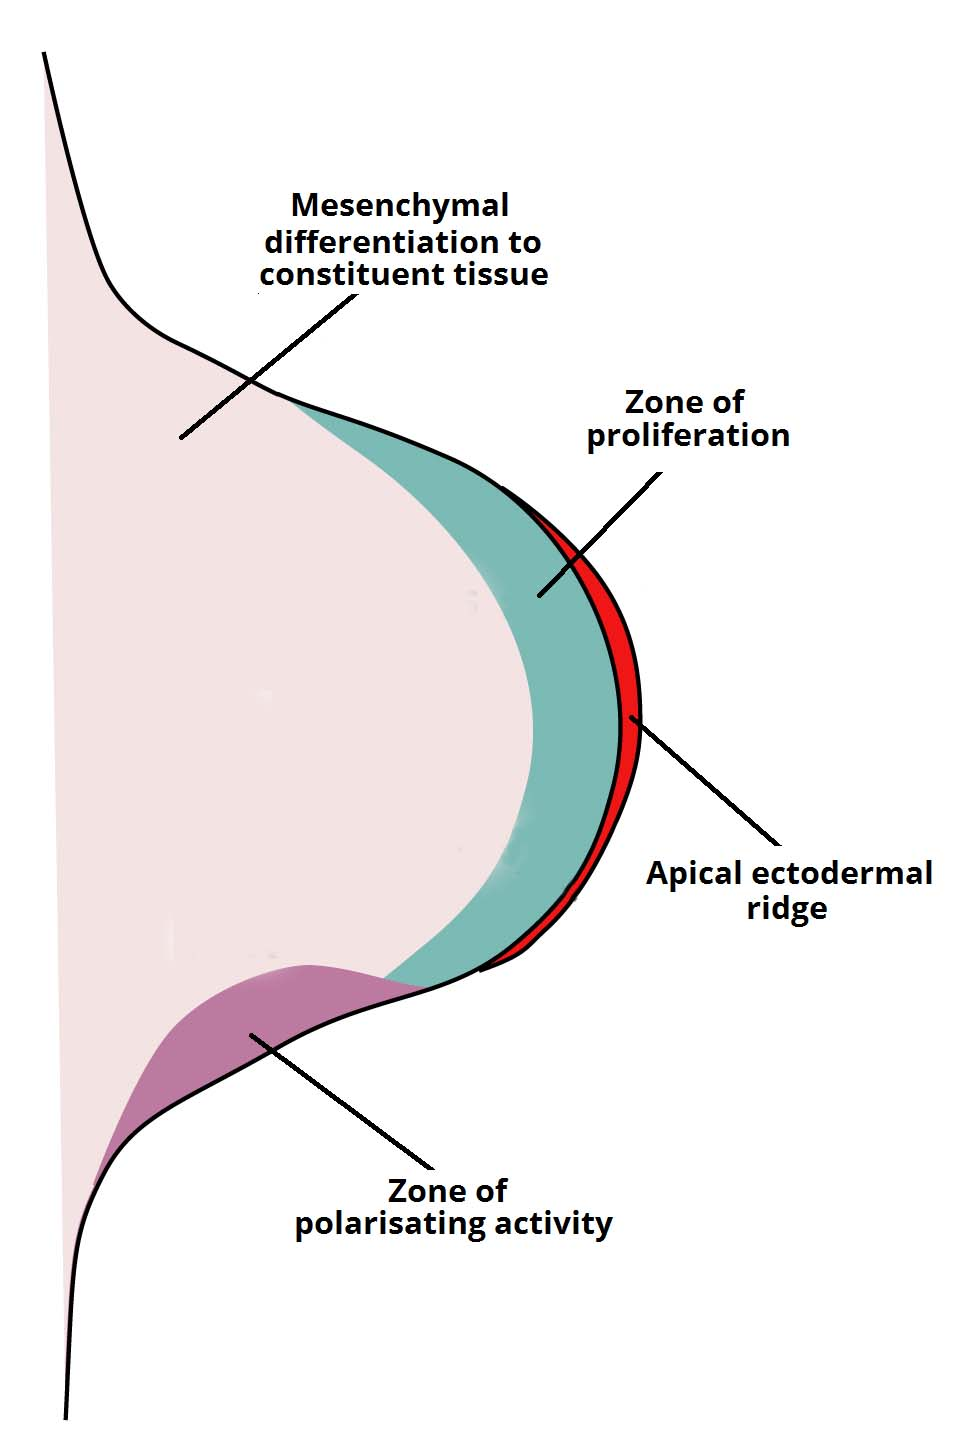 Fig 1.1 Development of the Limb Bud showing Apical Ectodermal Ridge and Underlying Tissues